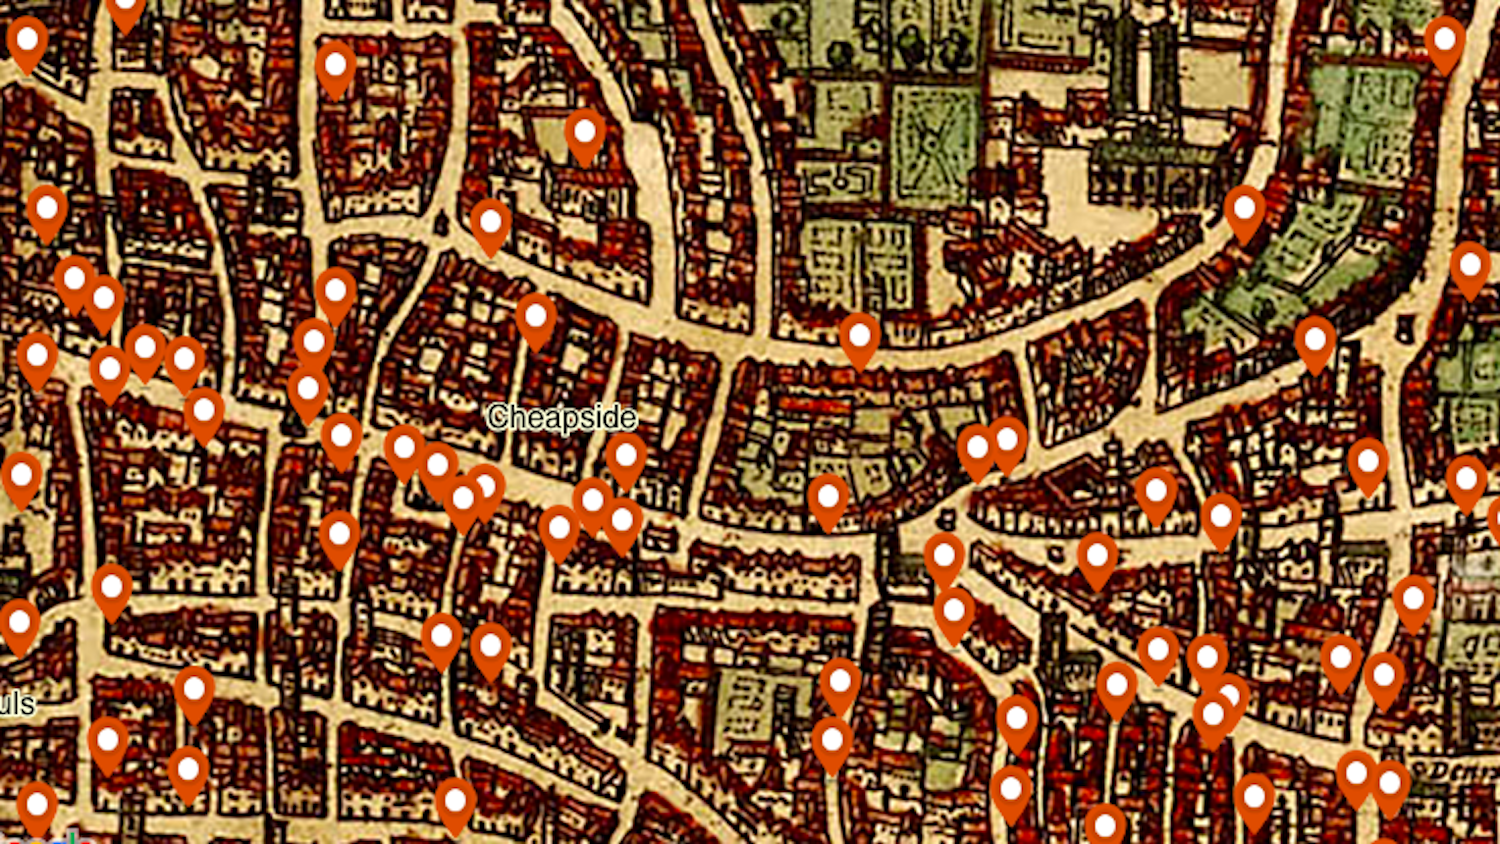 Map shows homicide hotspots in medieval London